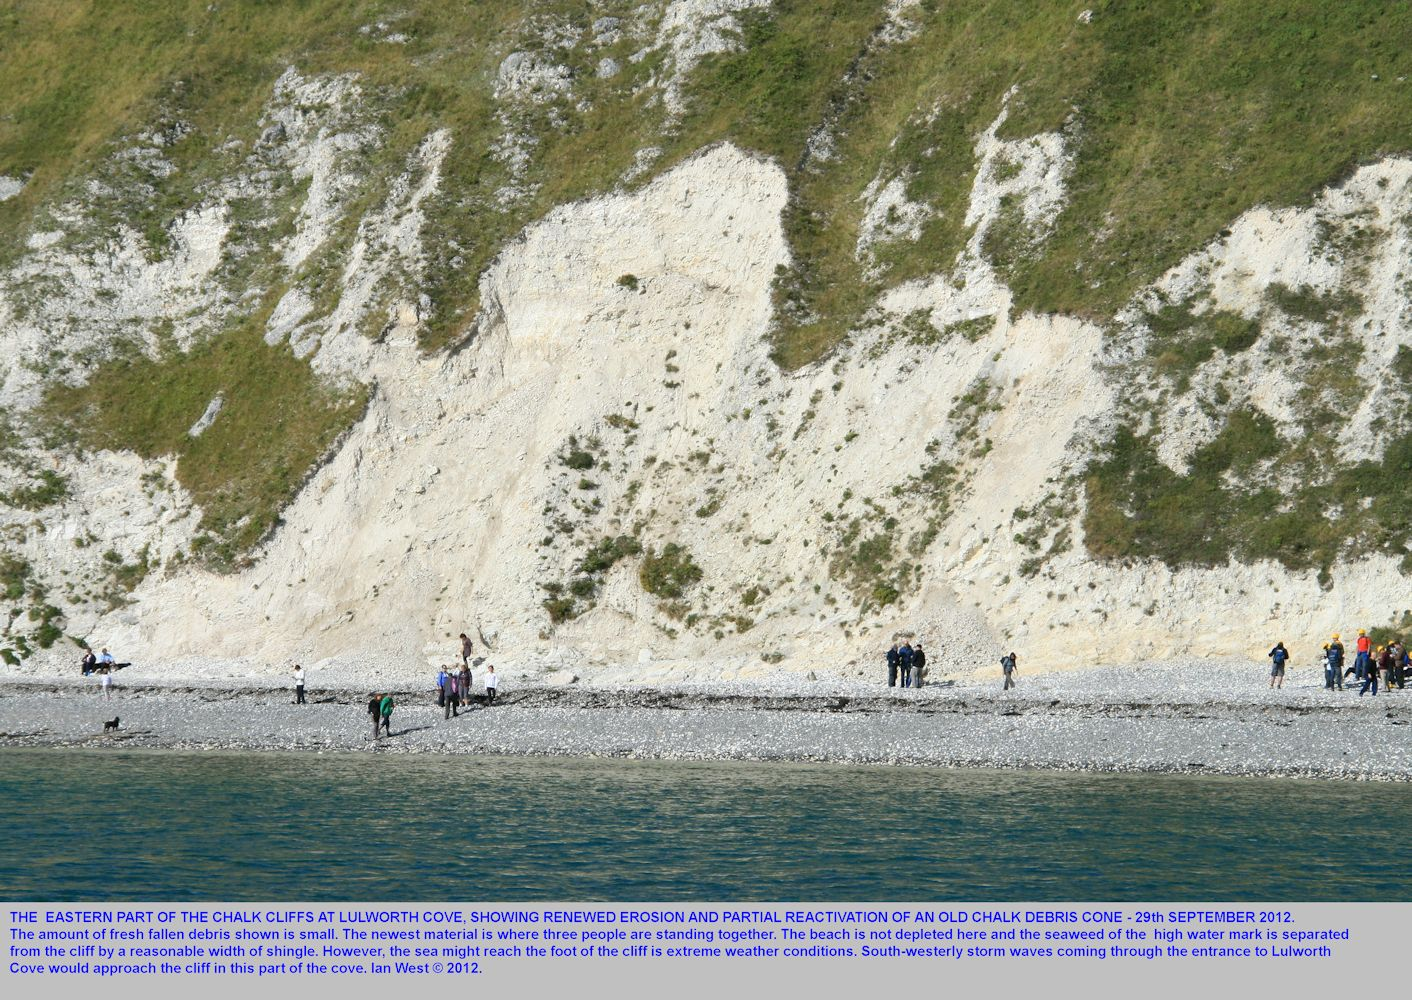 A distant view of renewed chalk debris falls at Lulworth Cove, Dorset, seen from the shore near the Eastern Horn, 29th September 2012